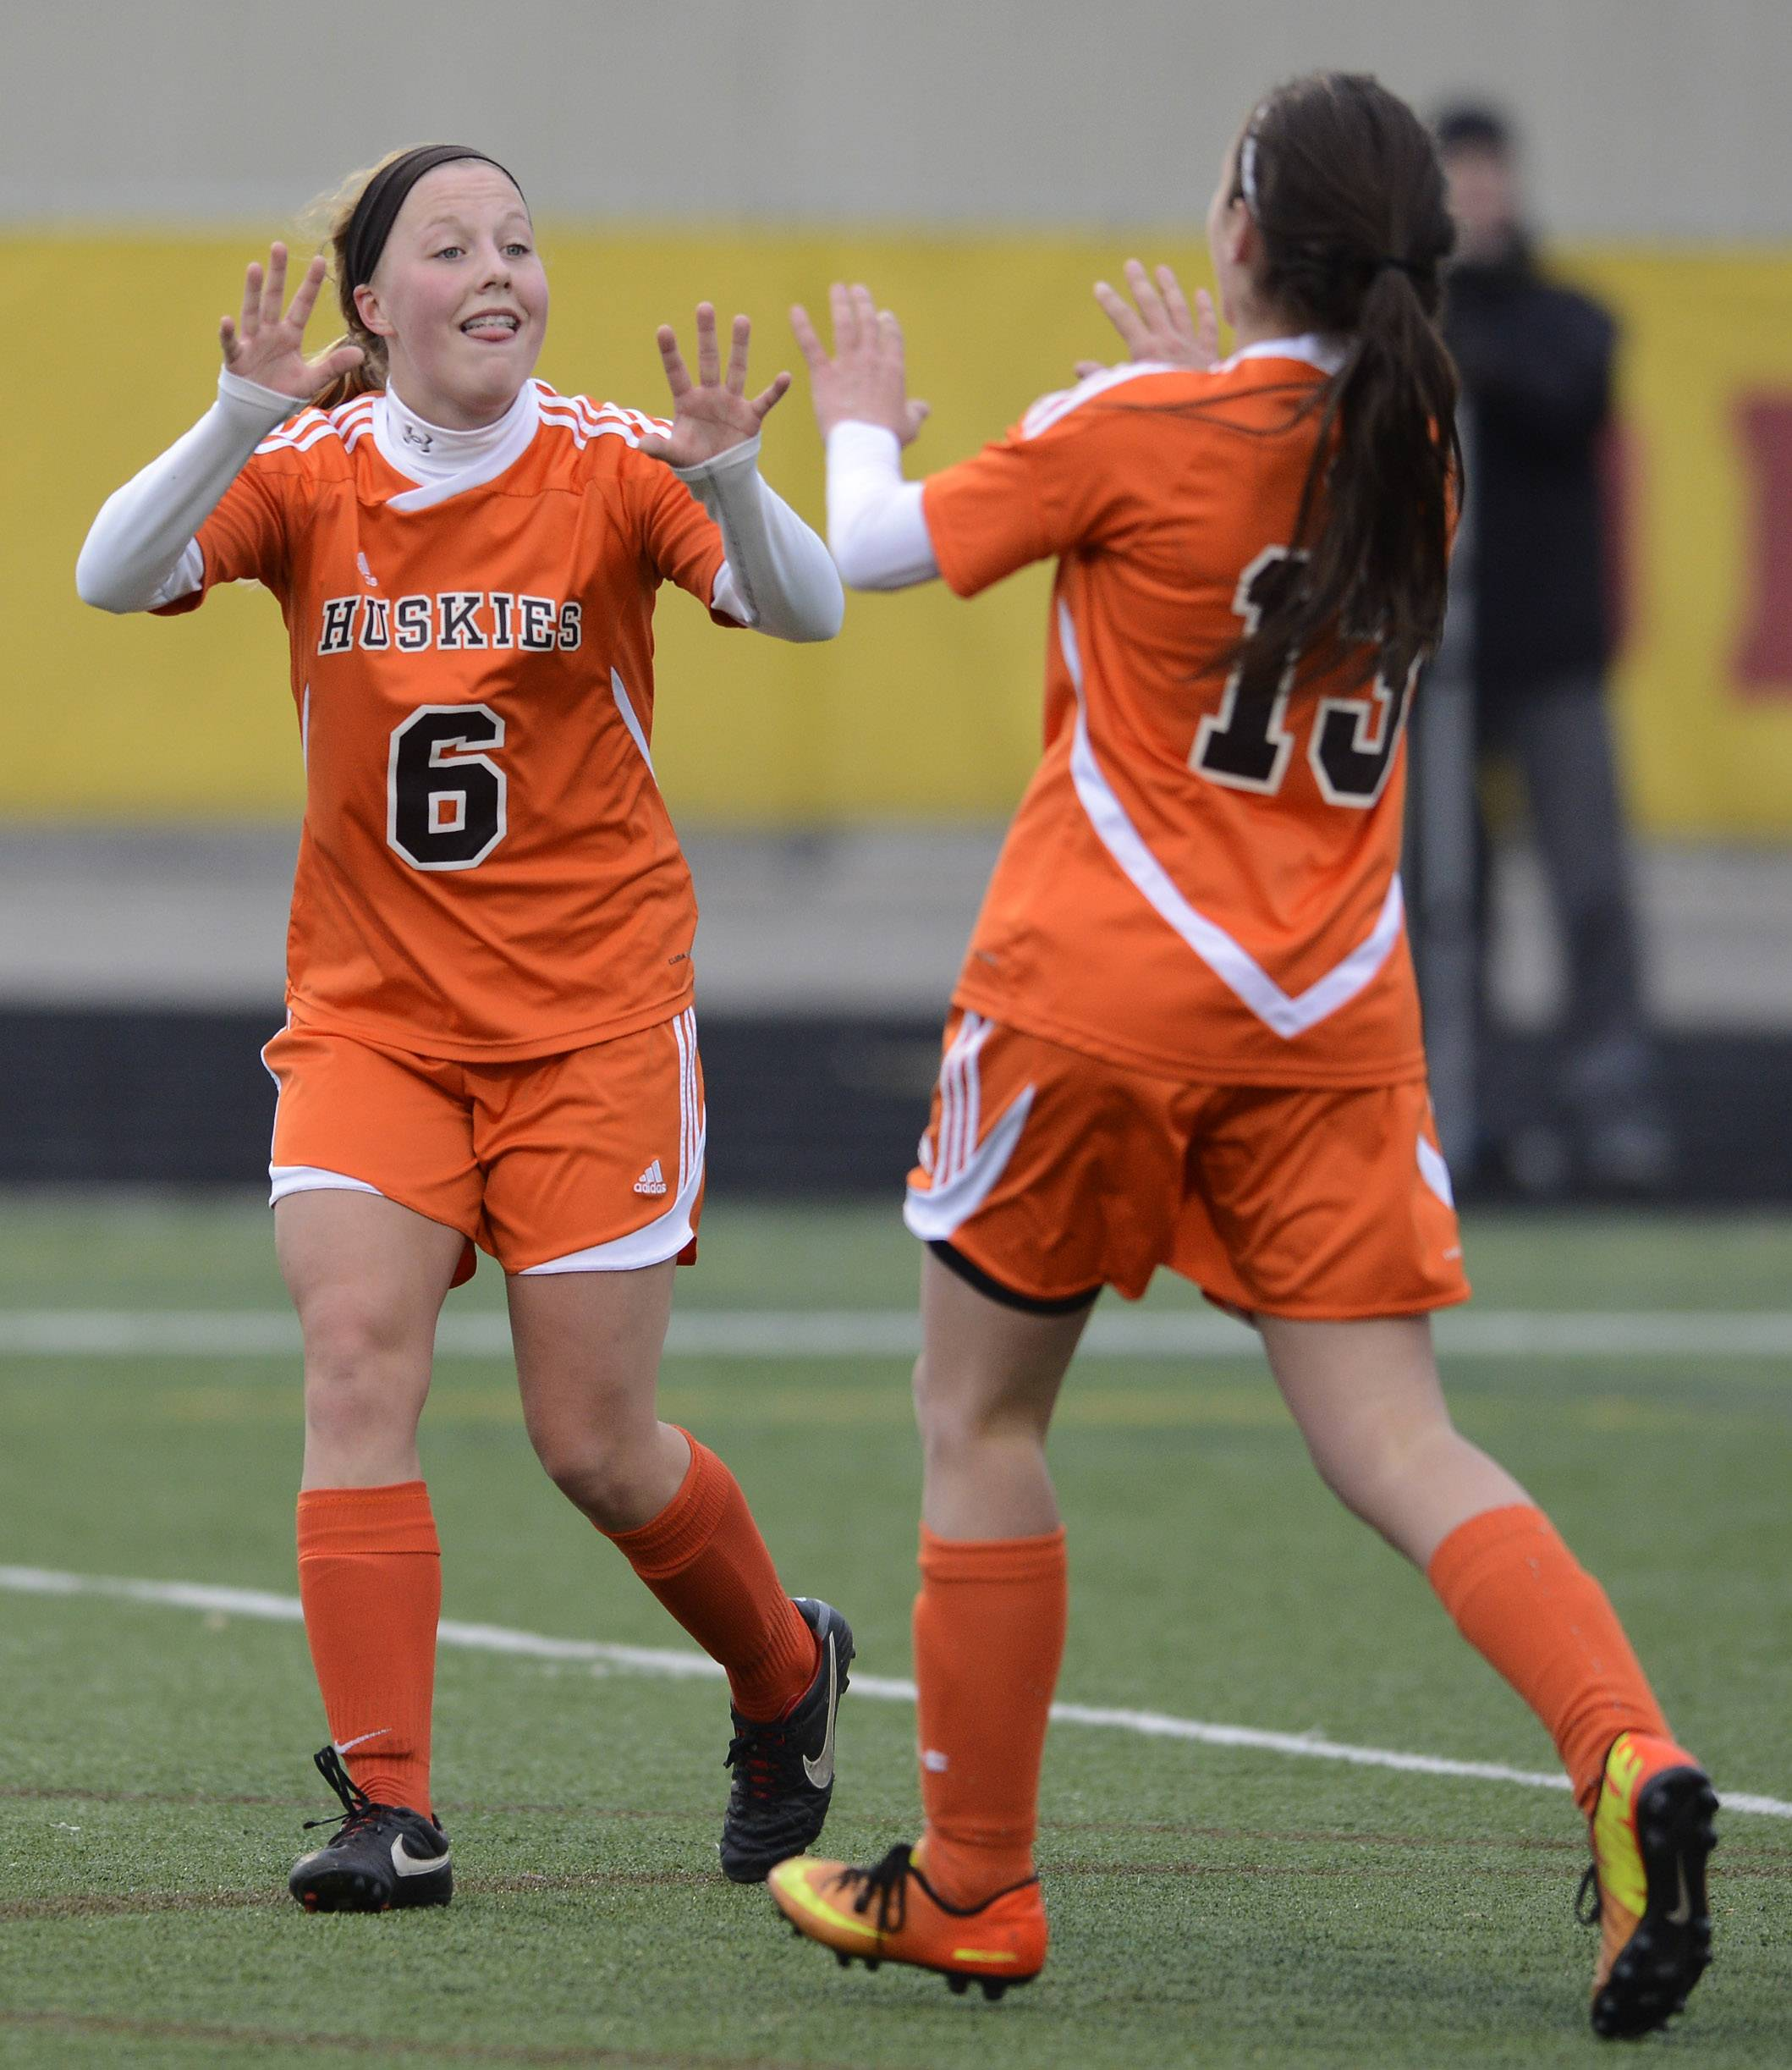 Hersey's Sara Magnuson, left, celebrates her second goal of the game after an assist from teammate Gina Miklasz during Wednesday's game at Schaumburg.